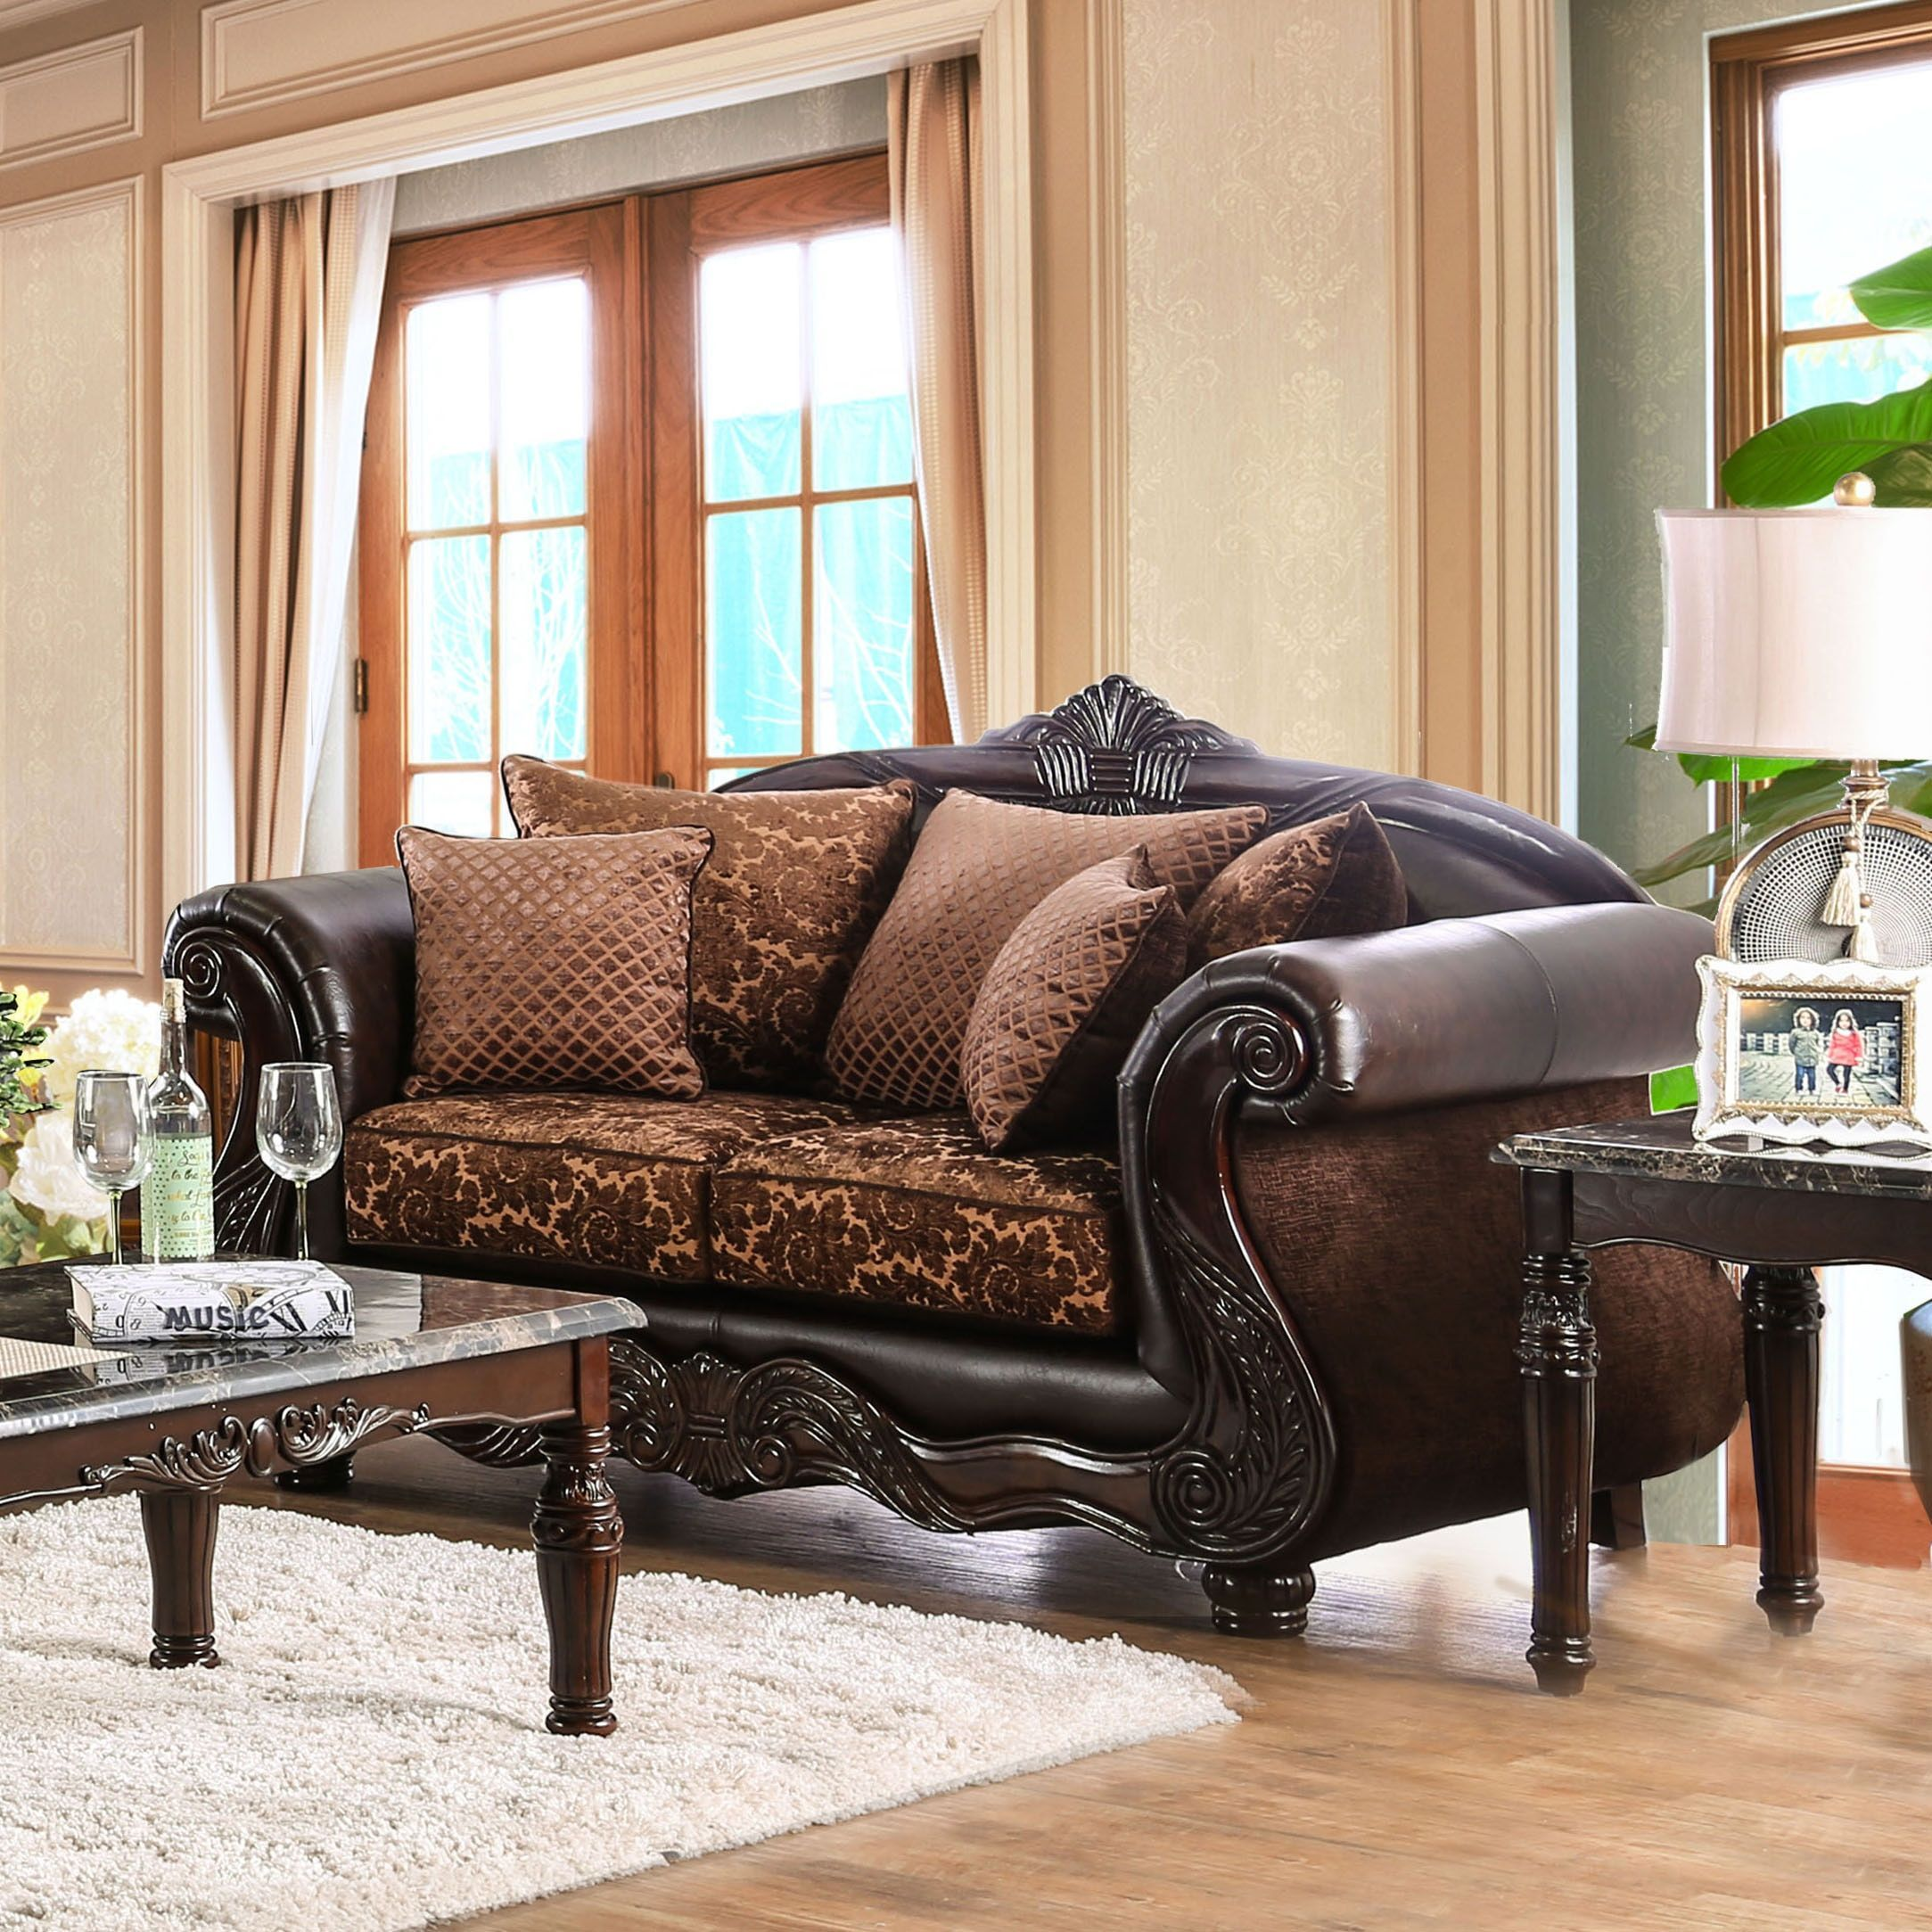 Furniture of america besser traditional chenille fabric and faux leather brown loveseat brown